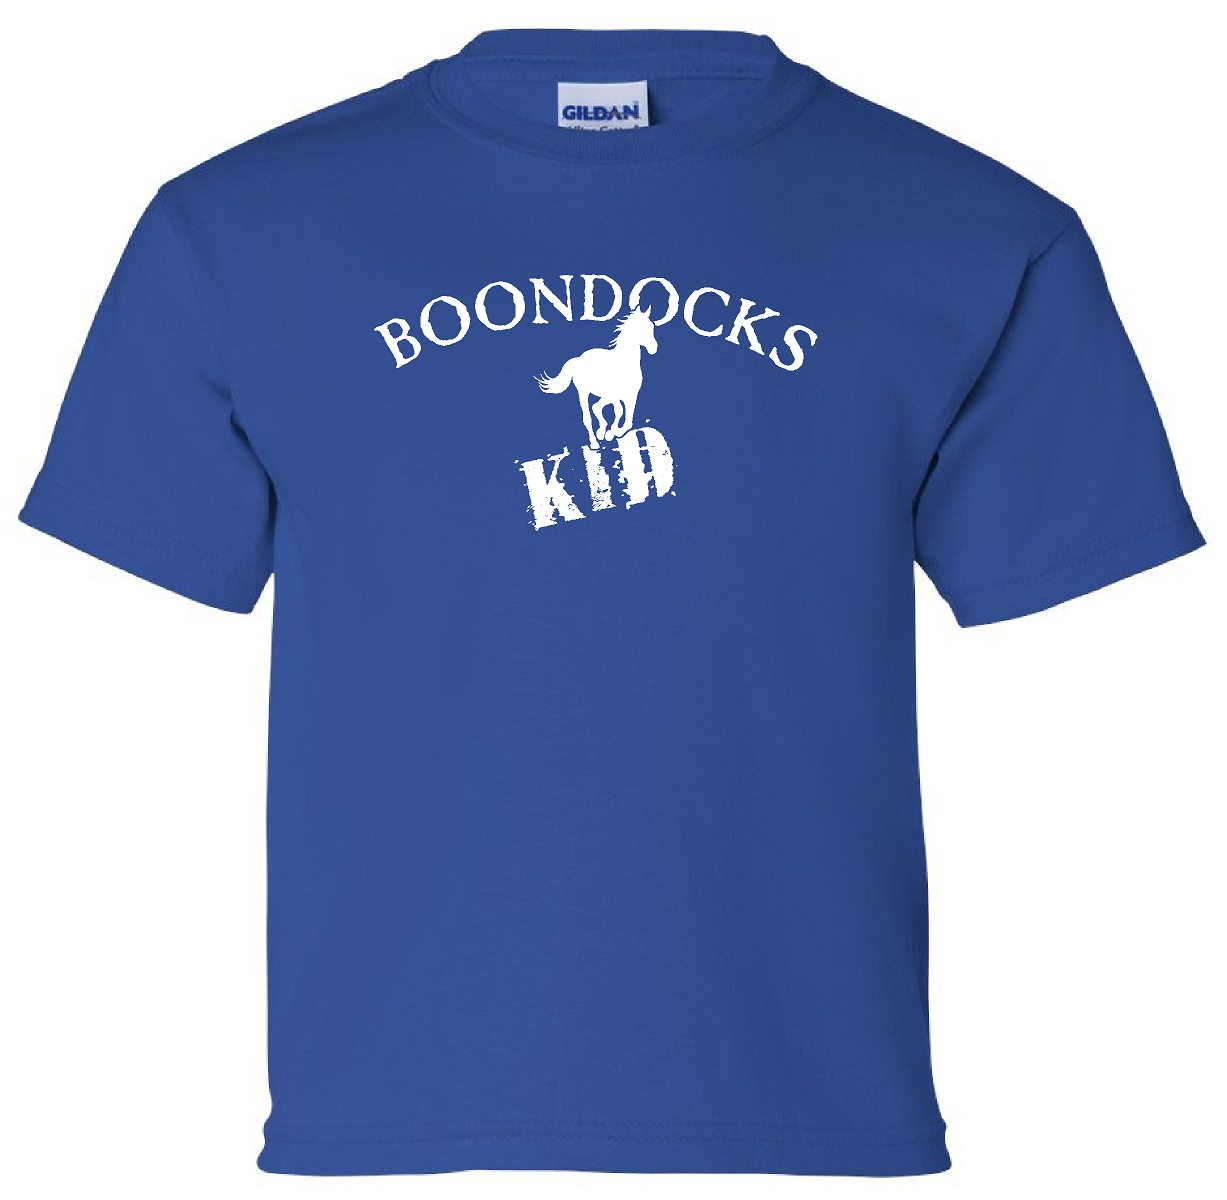 Boondocks Kid® T-shirt • HORSE